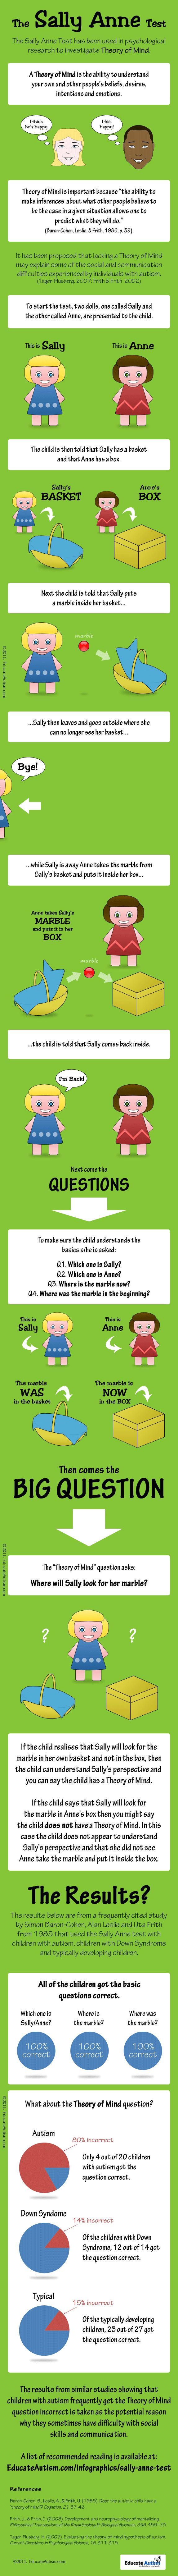 Sally Anne Test Theory of Mind Infographic